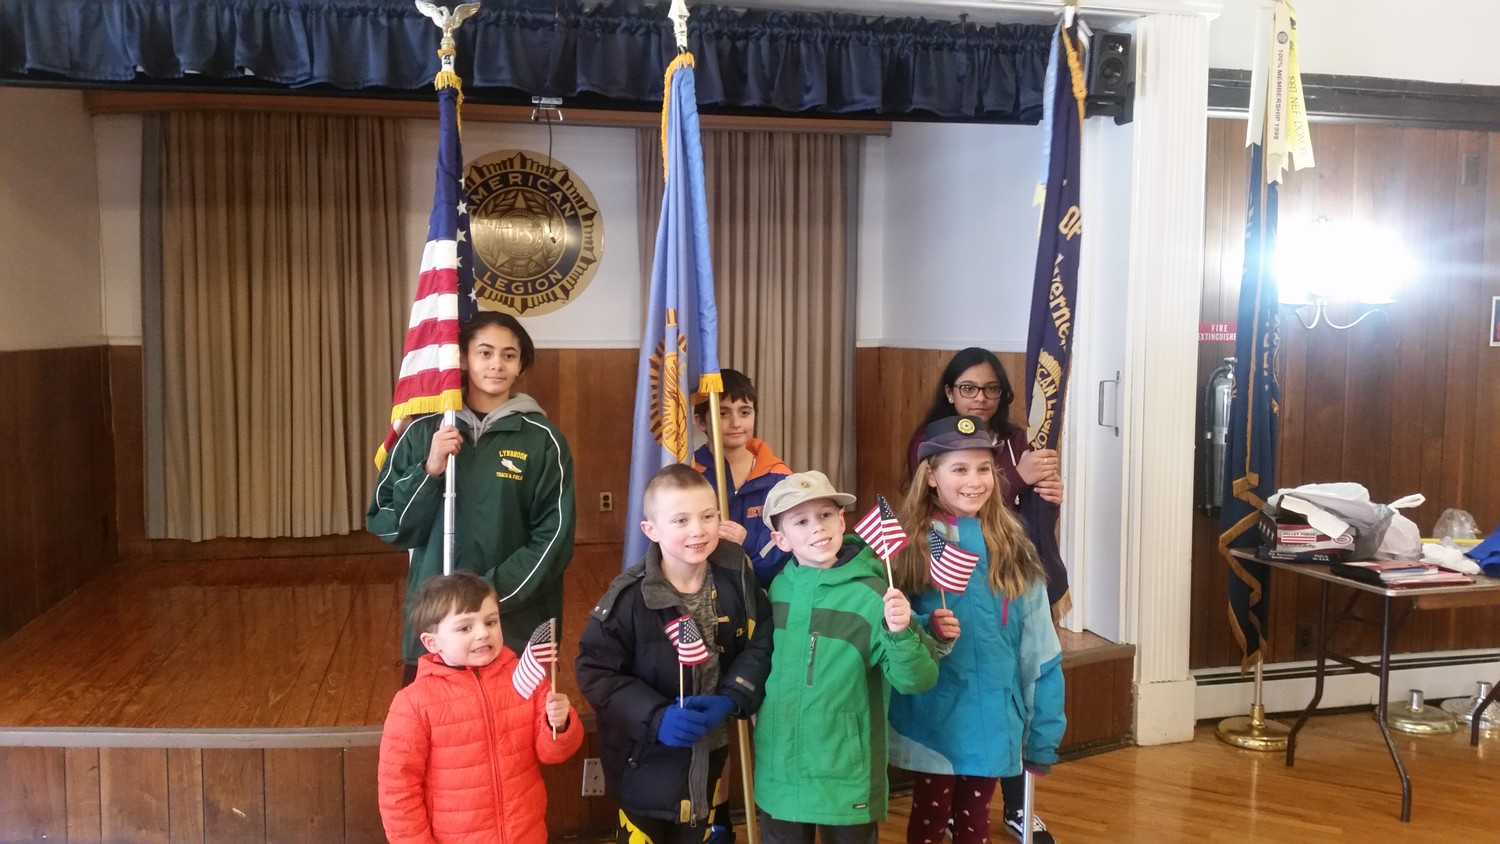 Children held the flags of Post 44 with pride.